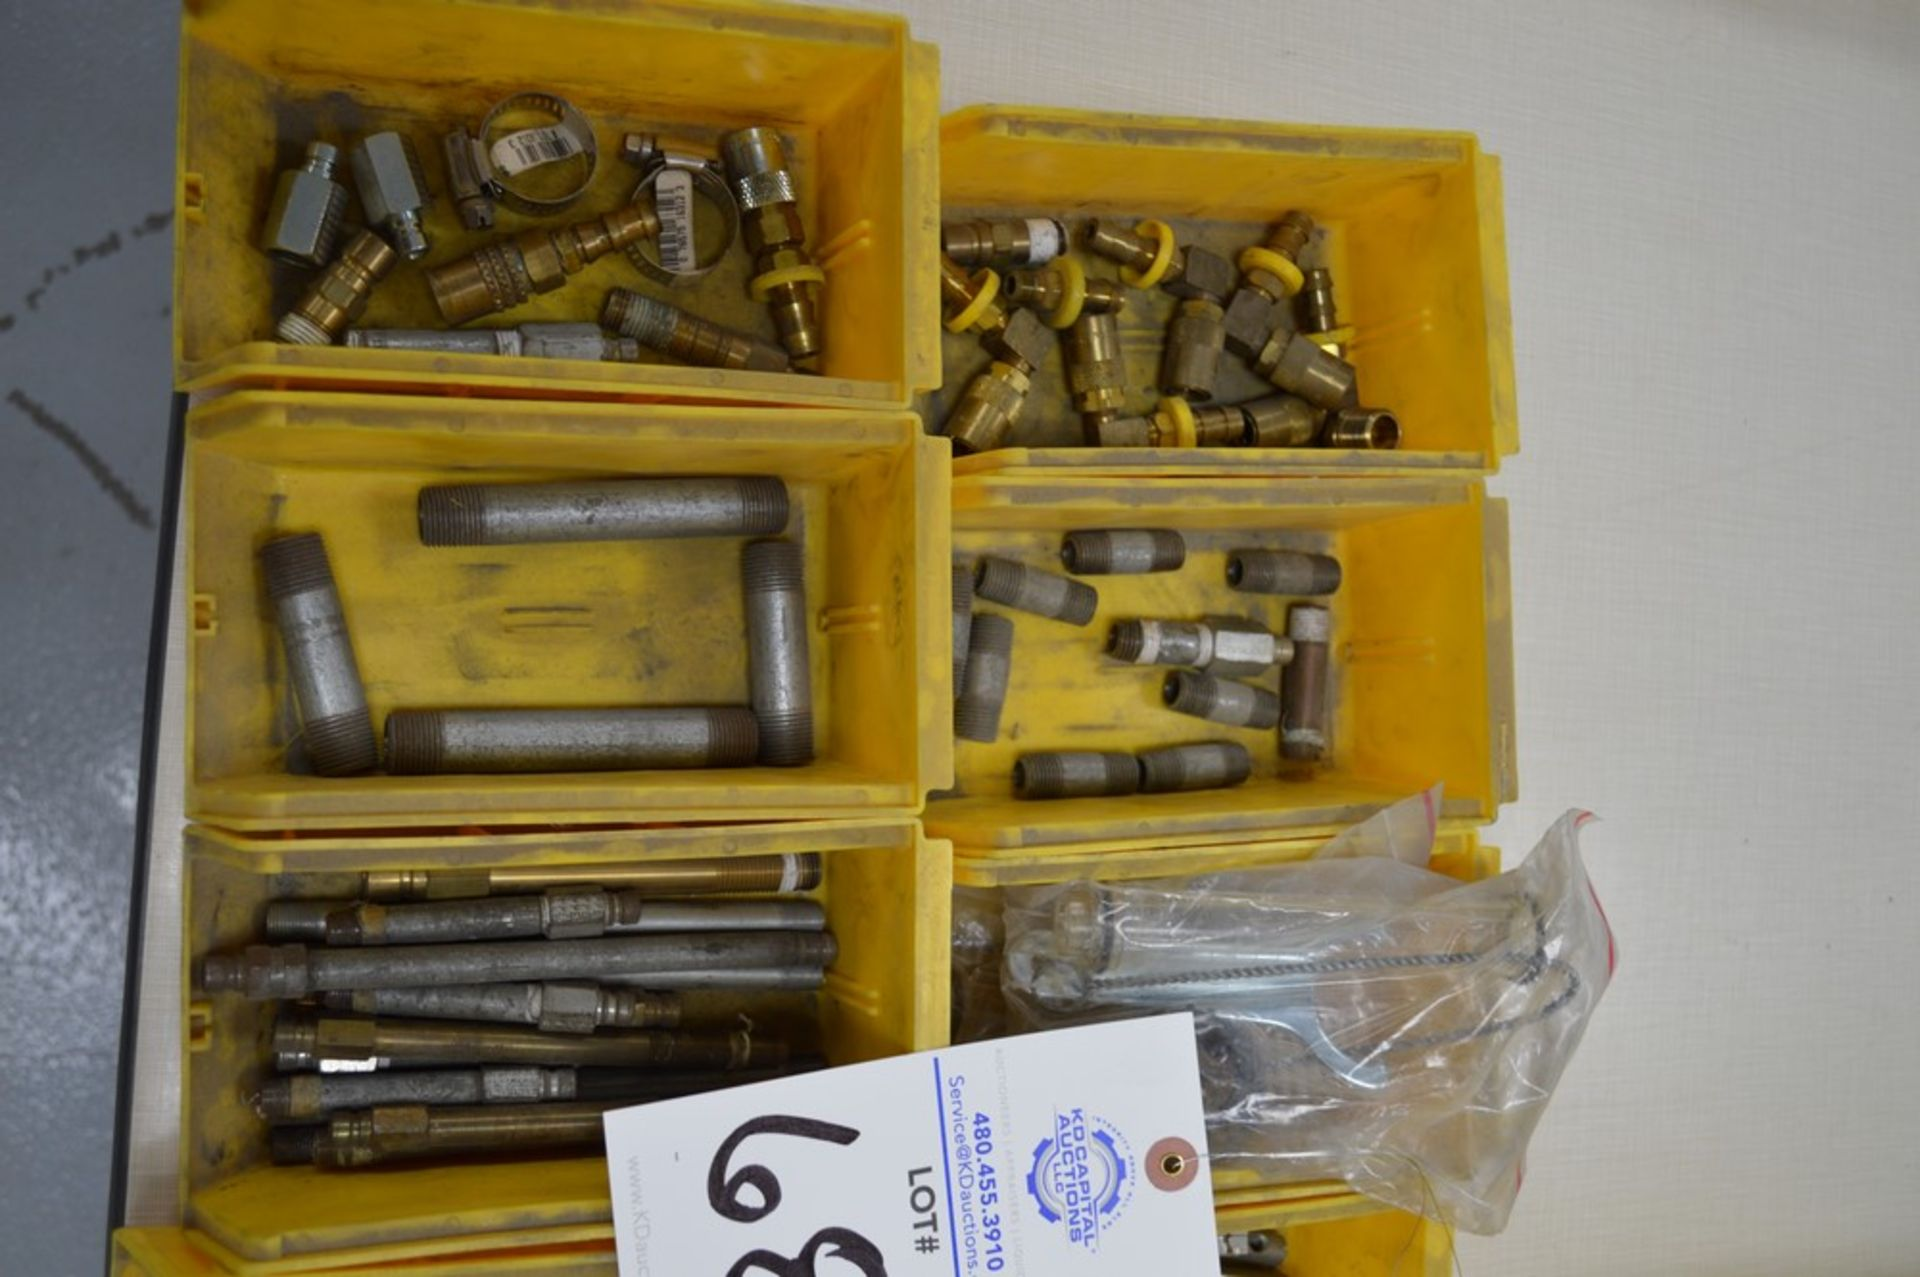 Air connectors, dual threaded connectors, chain, misc hardware - Image 2 of 4